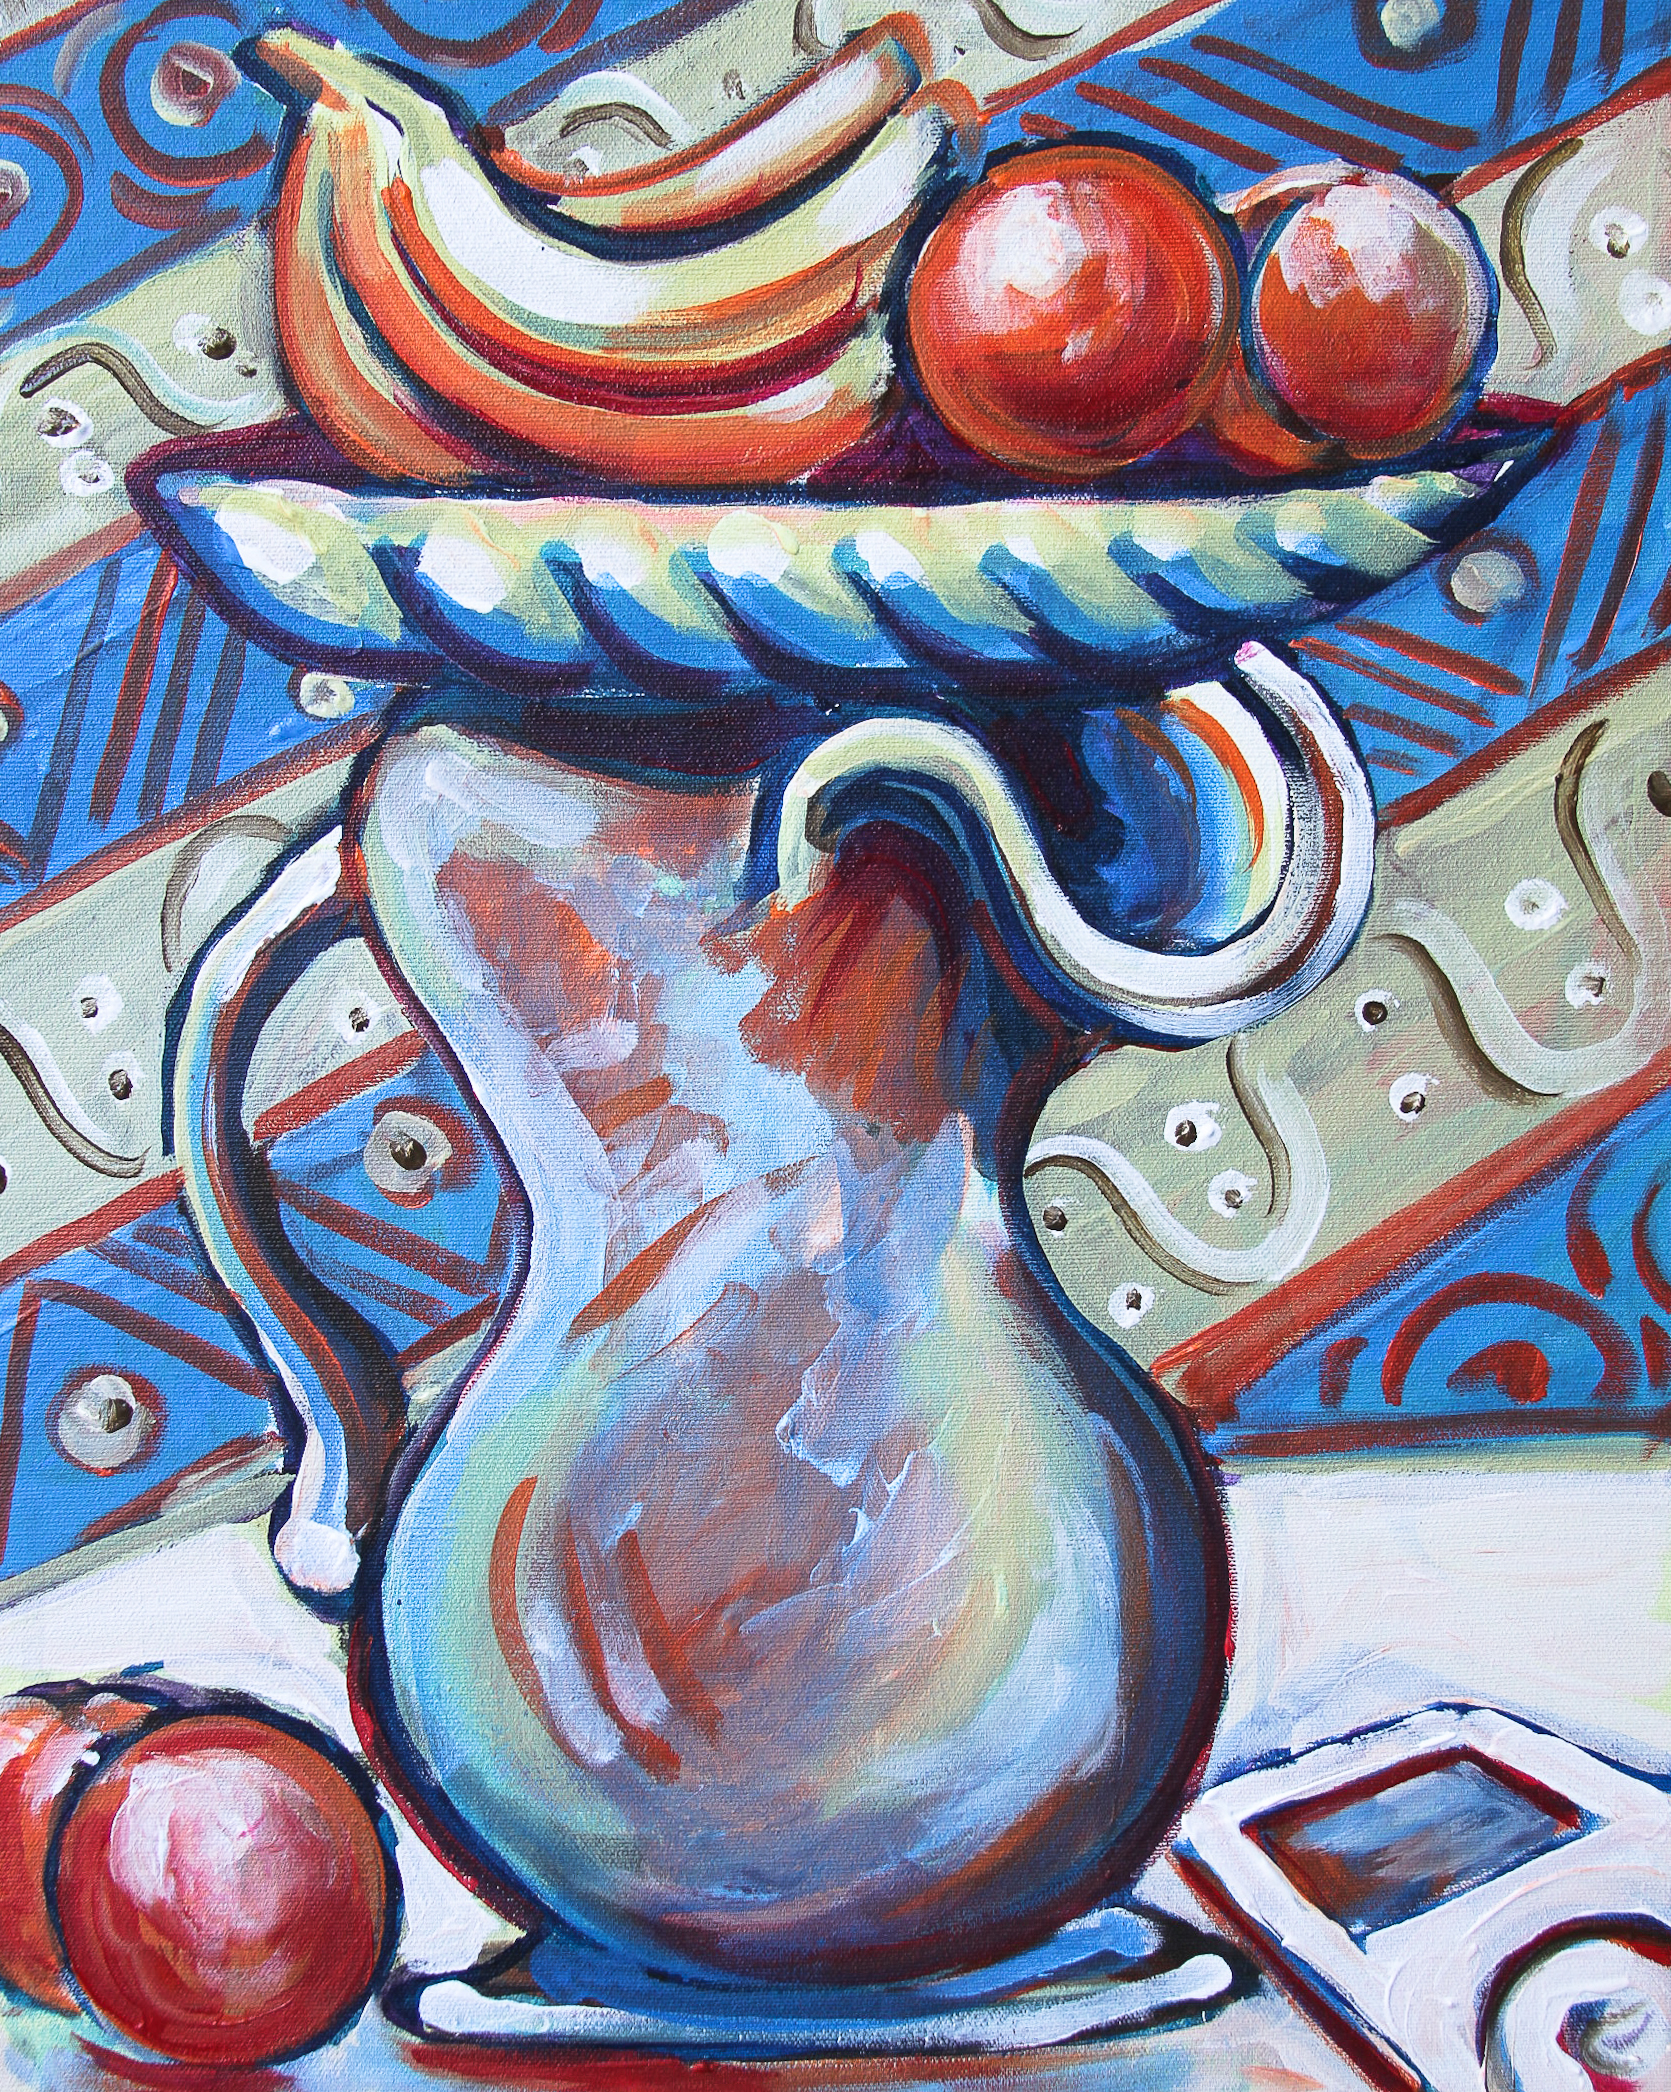 'Picasso's Fruit Bowl and Pitcher'